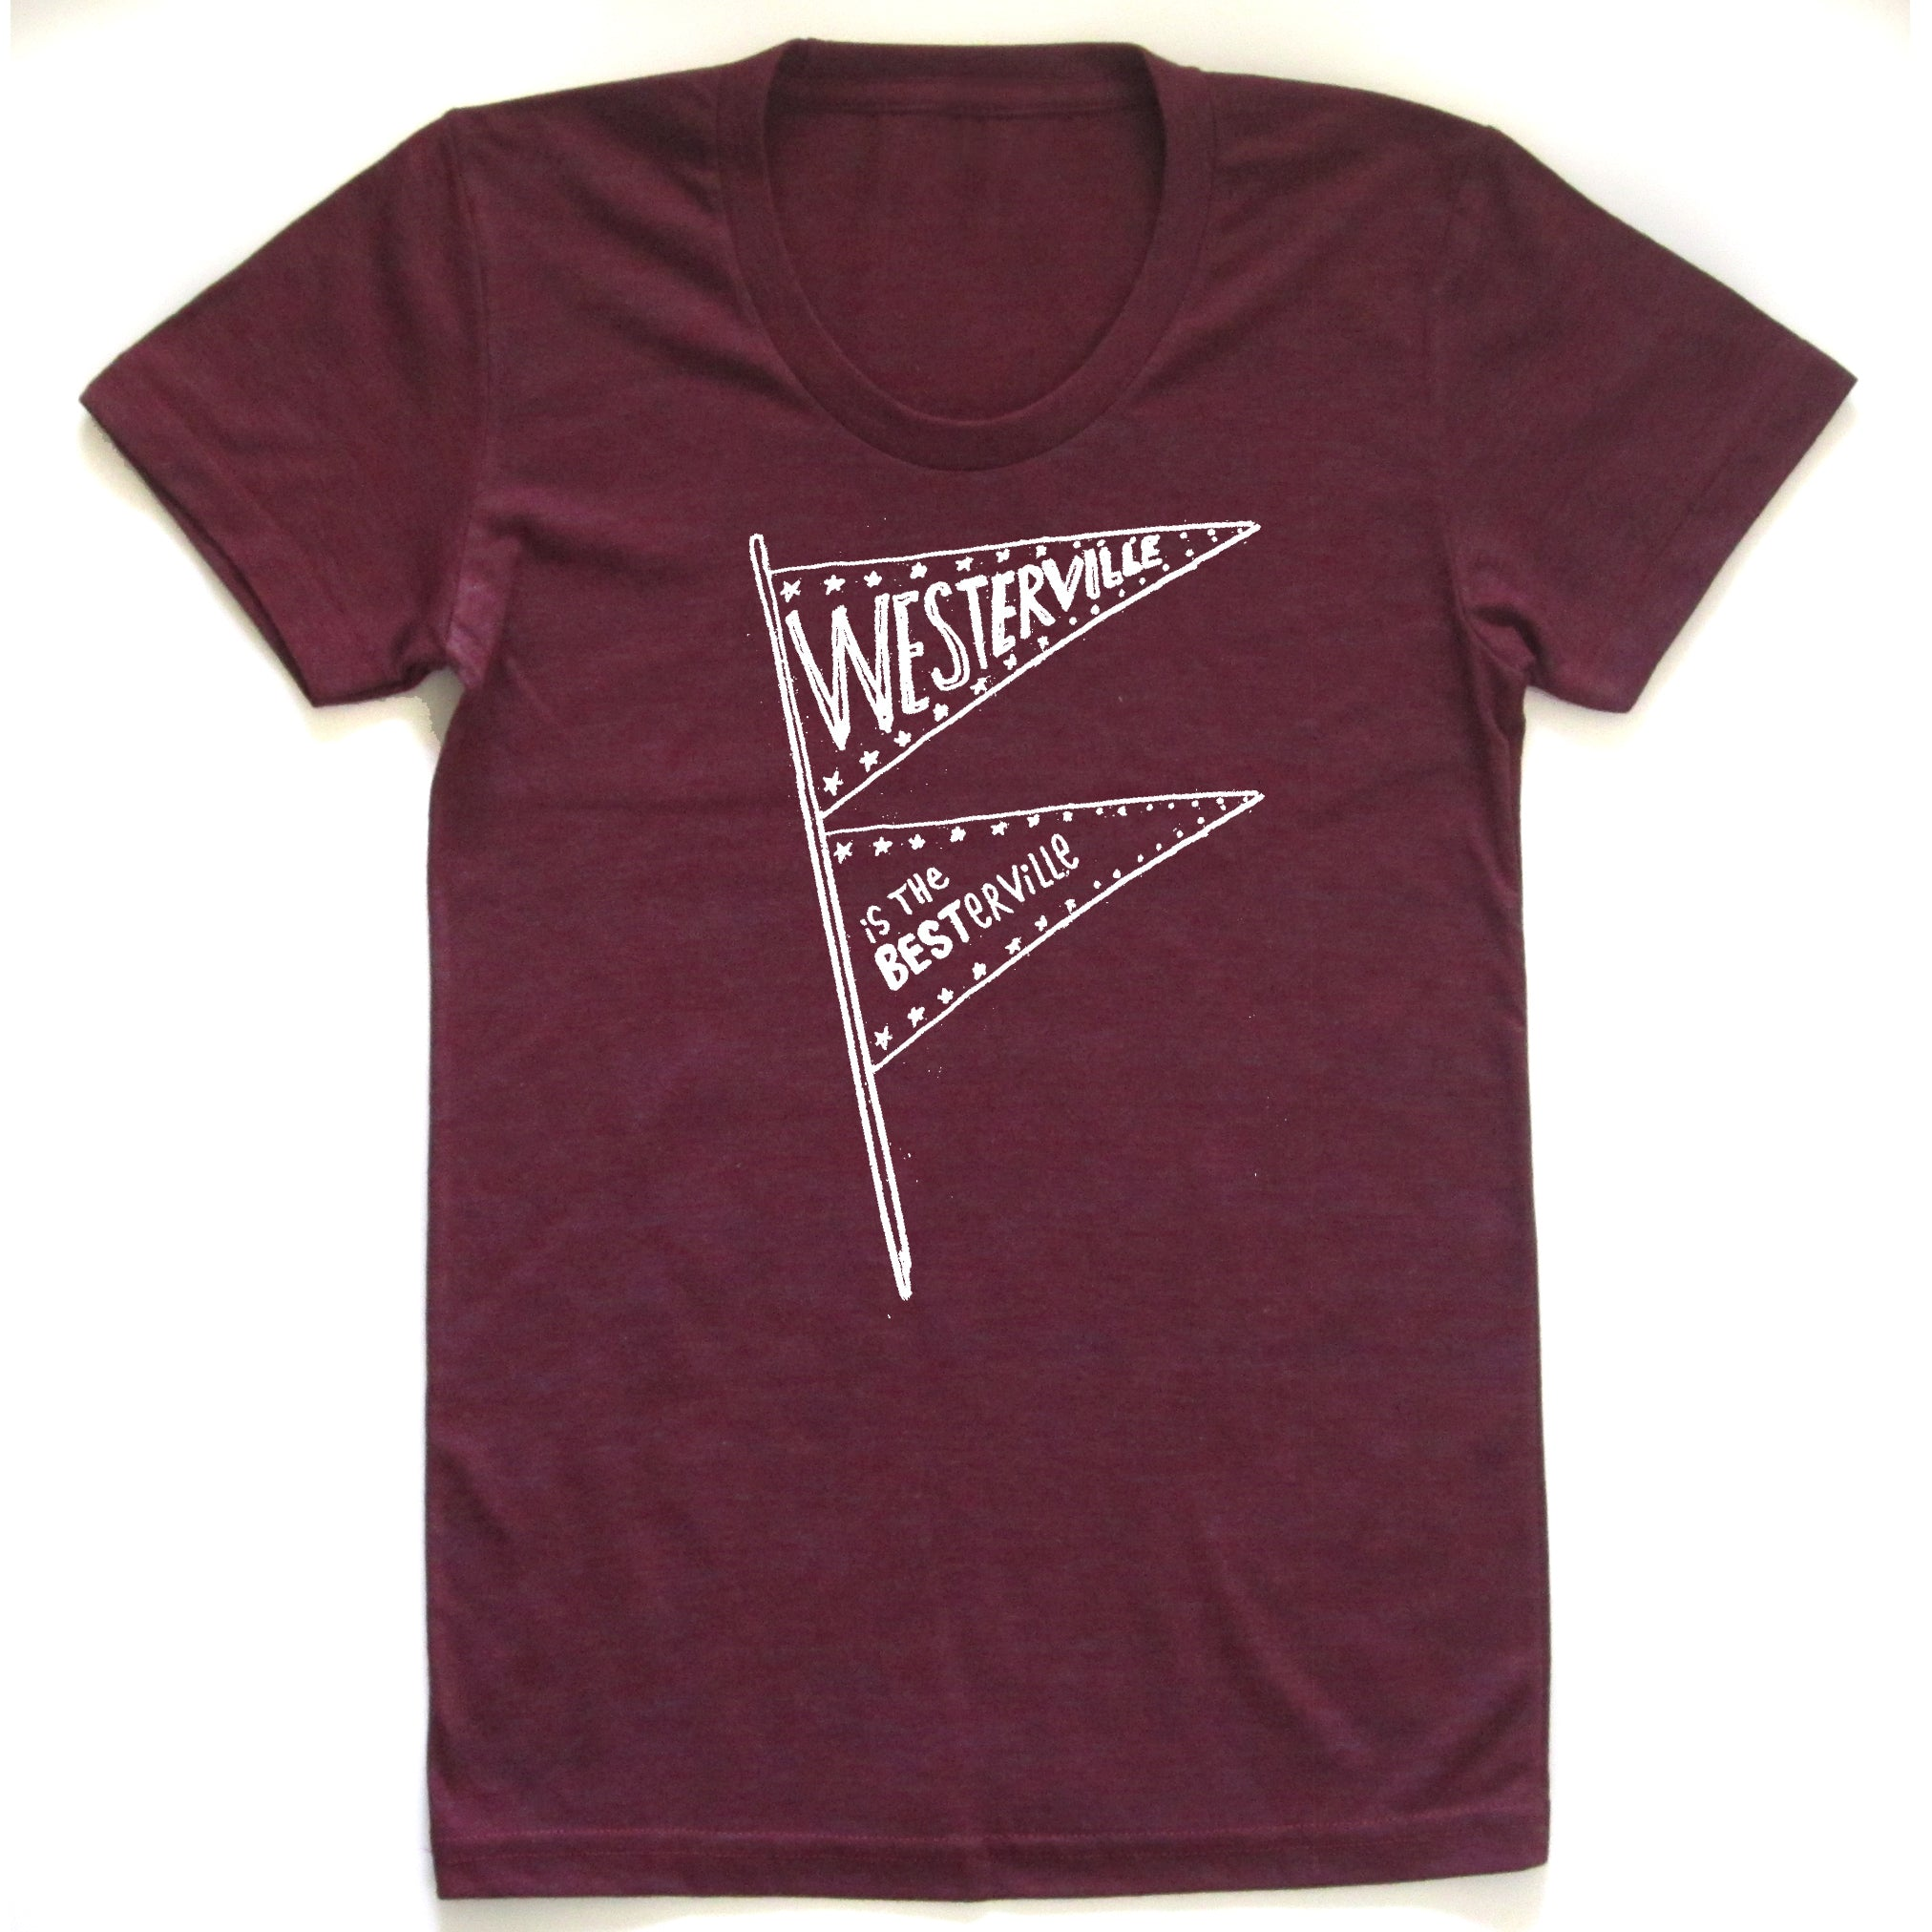 Westerville is the Besterville : Women's t-shirt or v-neck